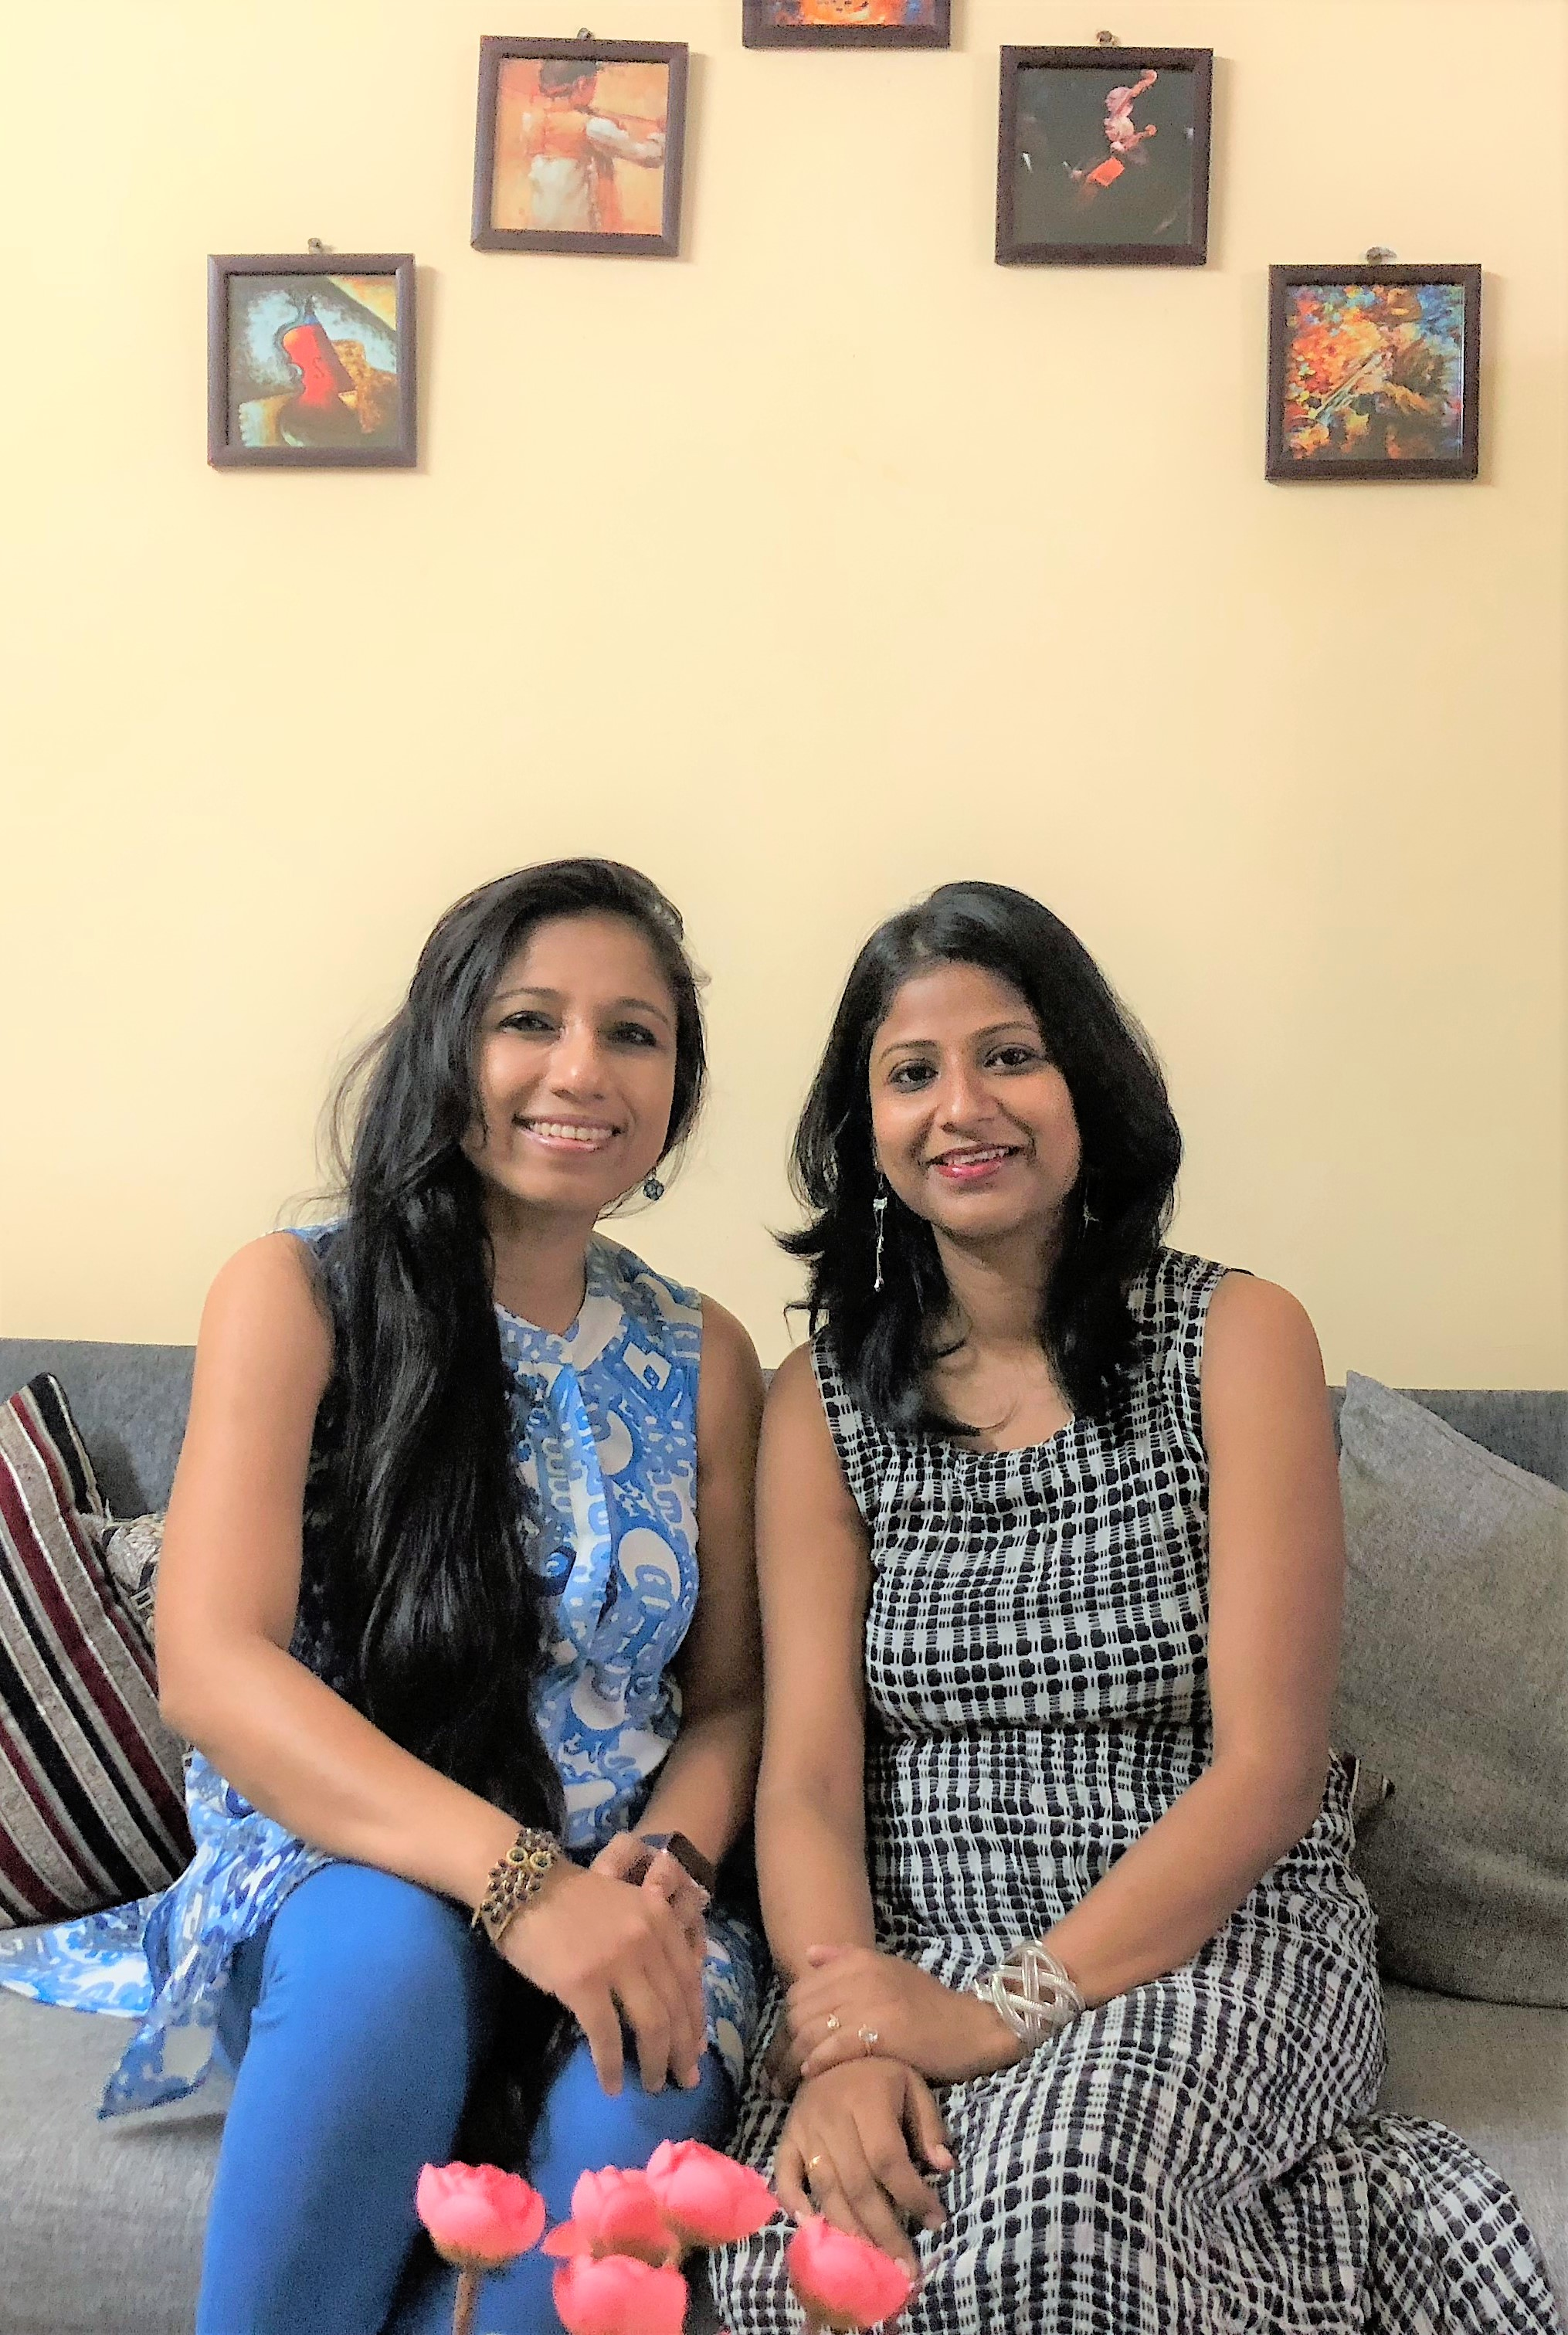 Thankful to Dr. Ishita Deb, Clinical Embryologist, Dispur Hospitals Pvt. Ltd for her help in connecting BCH to Bodhana and playing a huge role in the events organized by Bodhana. Also thankful to Dr. Deb for being on the General Advisory Board of BCH. Biography of Dr. Deb will be available on BCH website